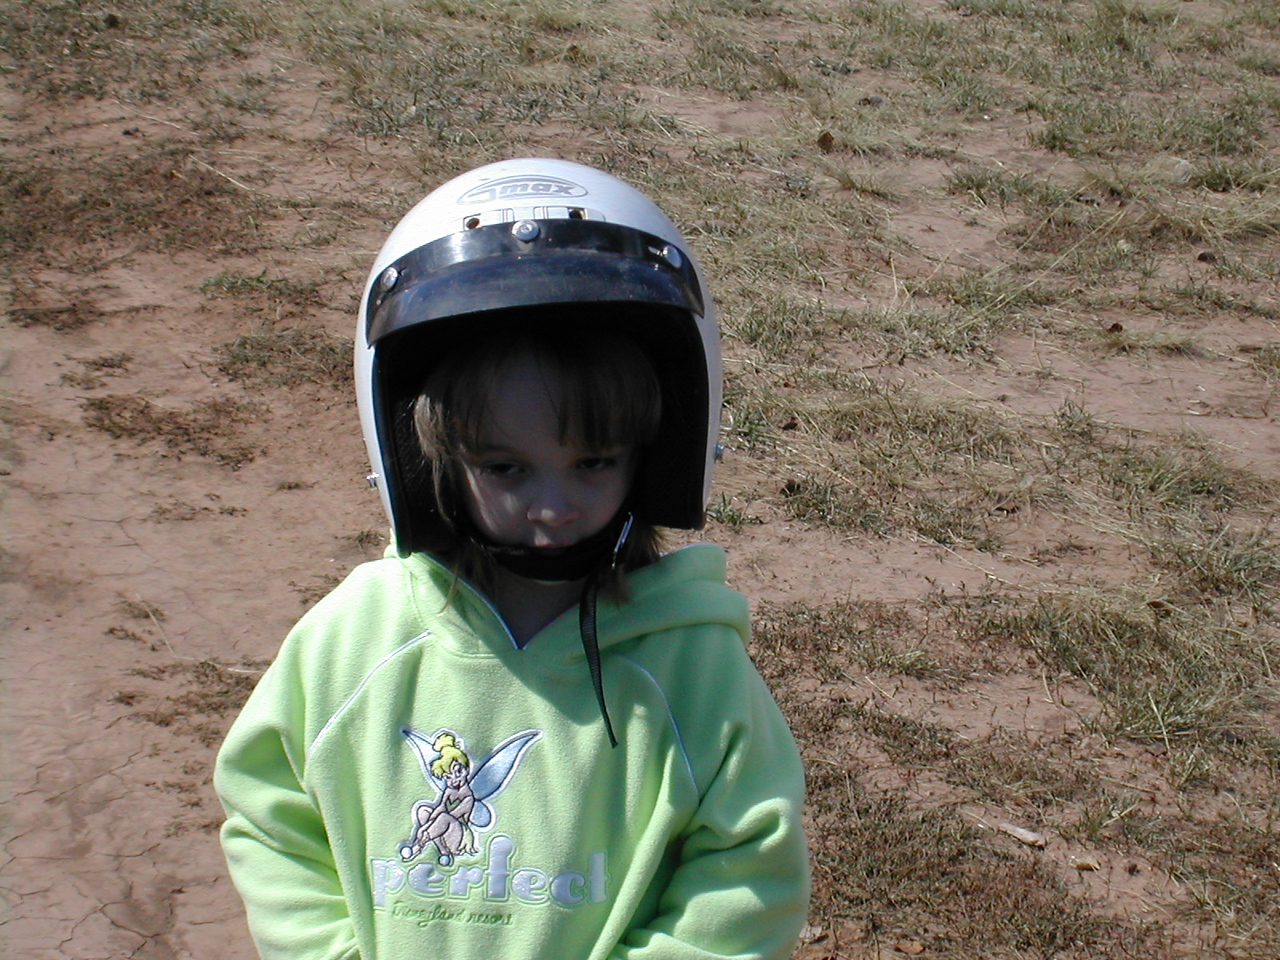 At first we couldn't get Lauren to put the helmet on but she came around and had a really good time.